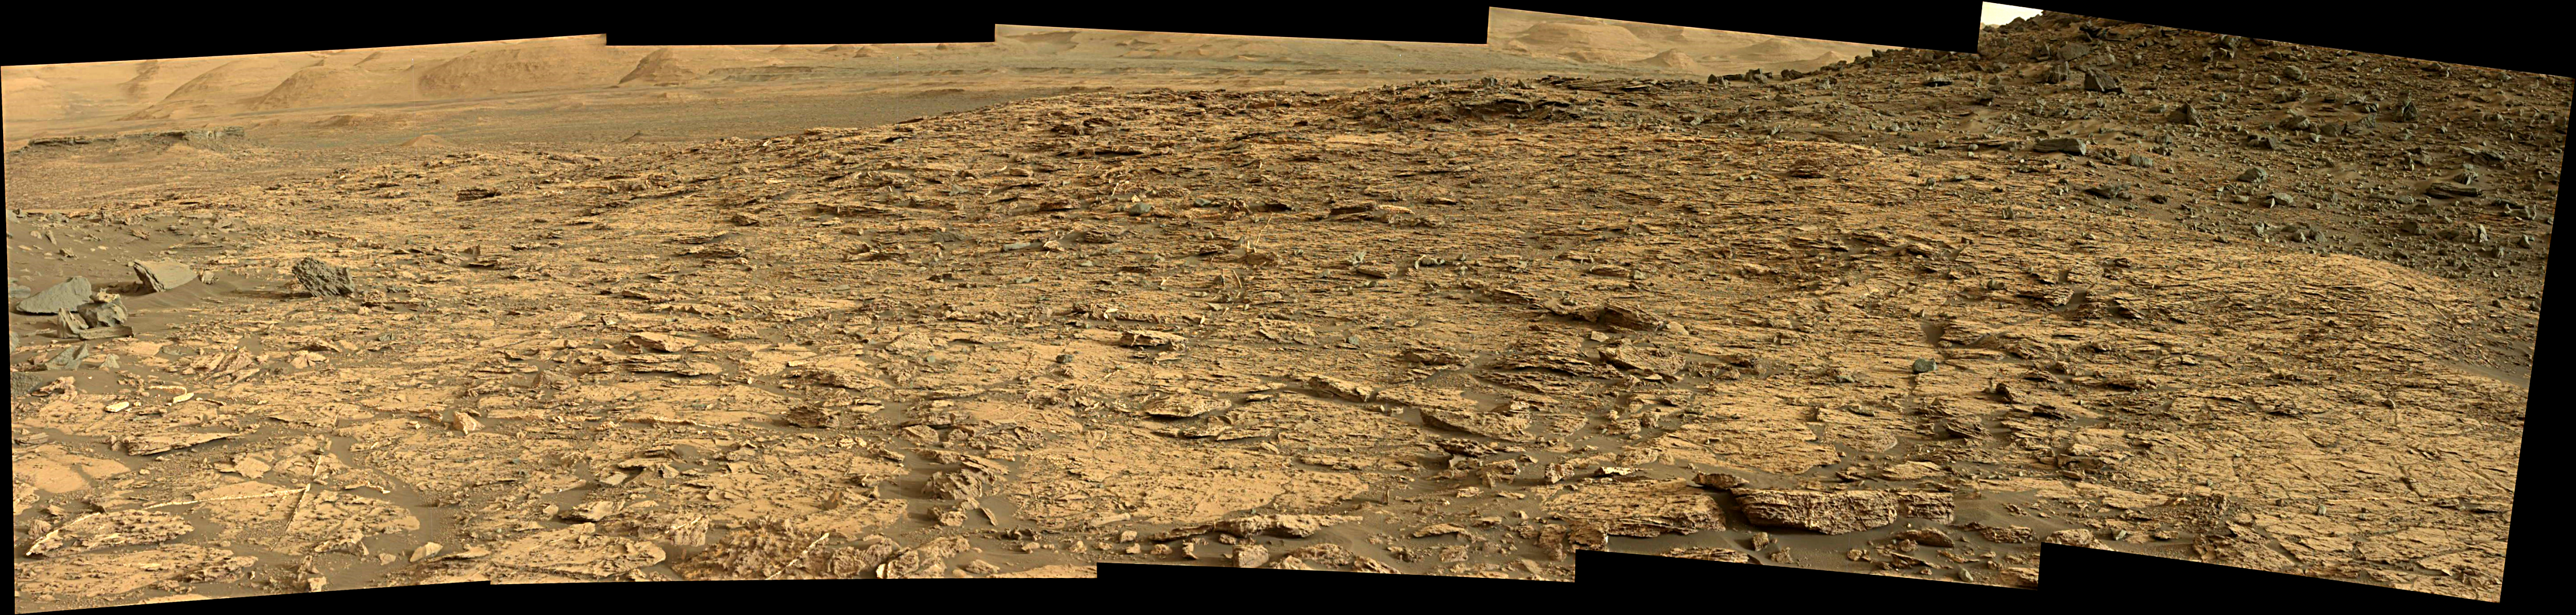 panoramic-curiosity-rover-view-4e-sol-1448-was-life-on-mars